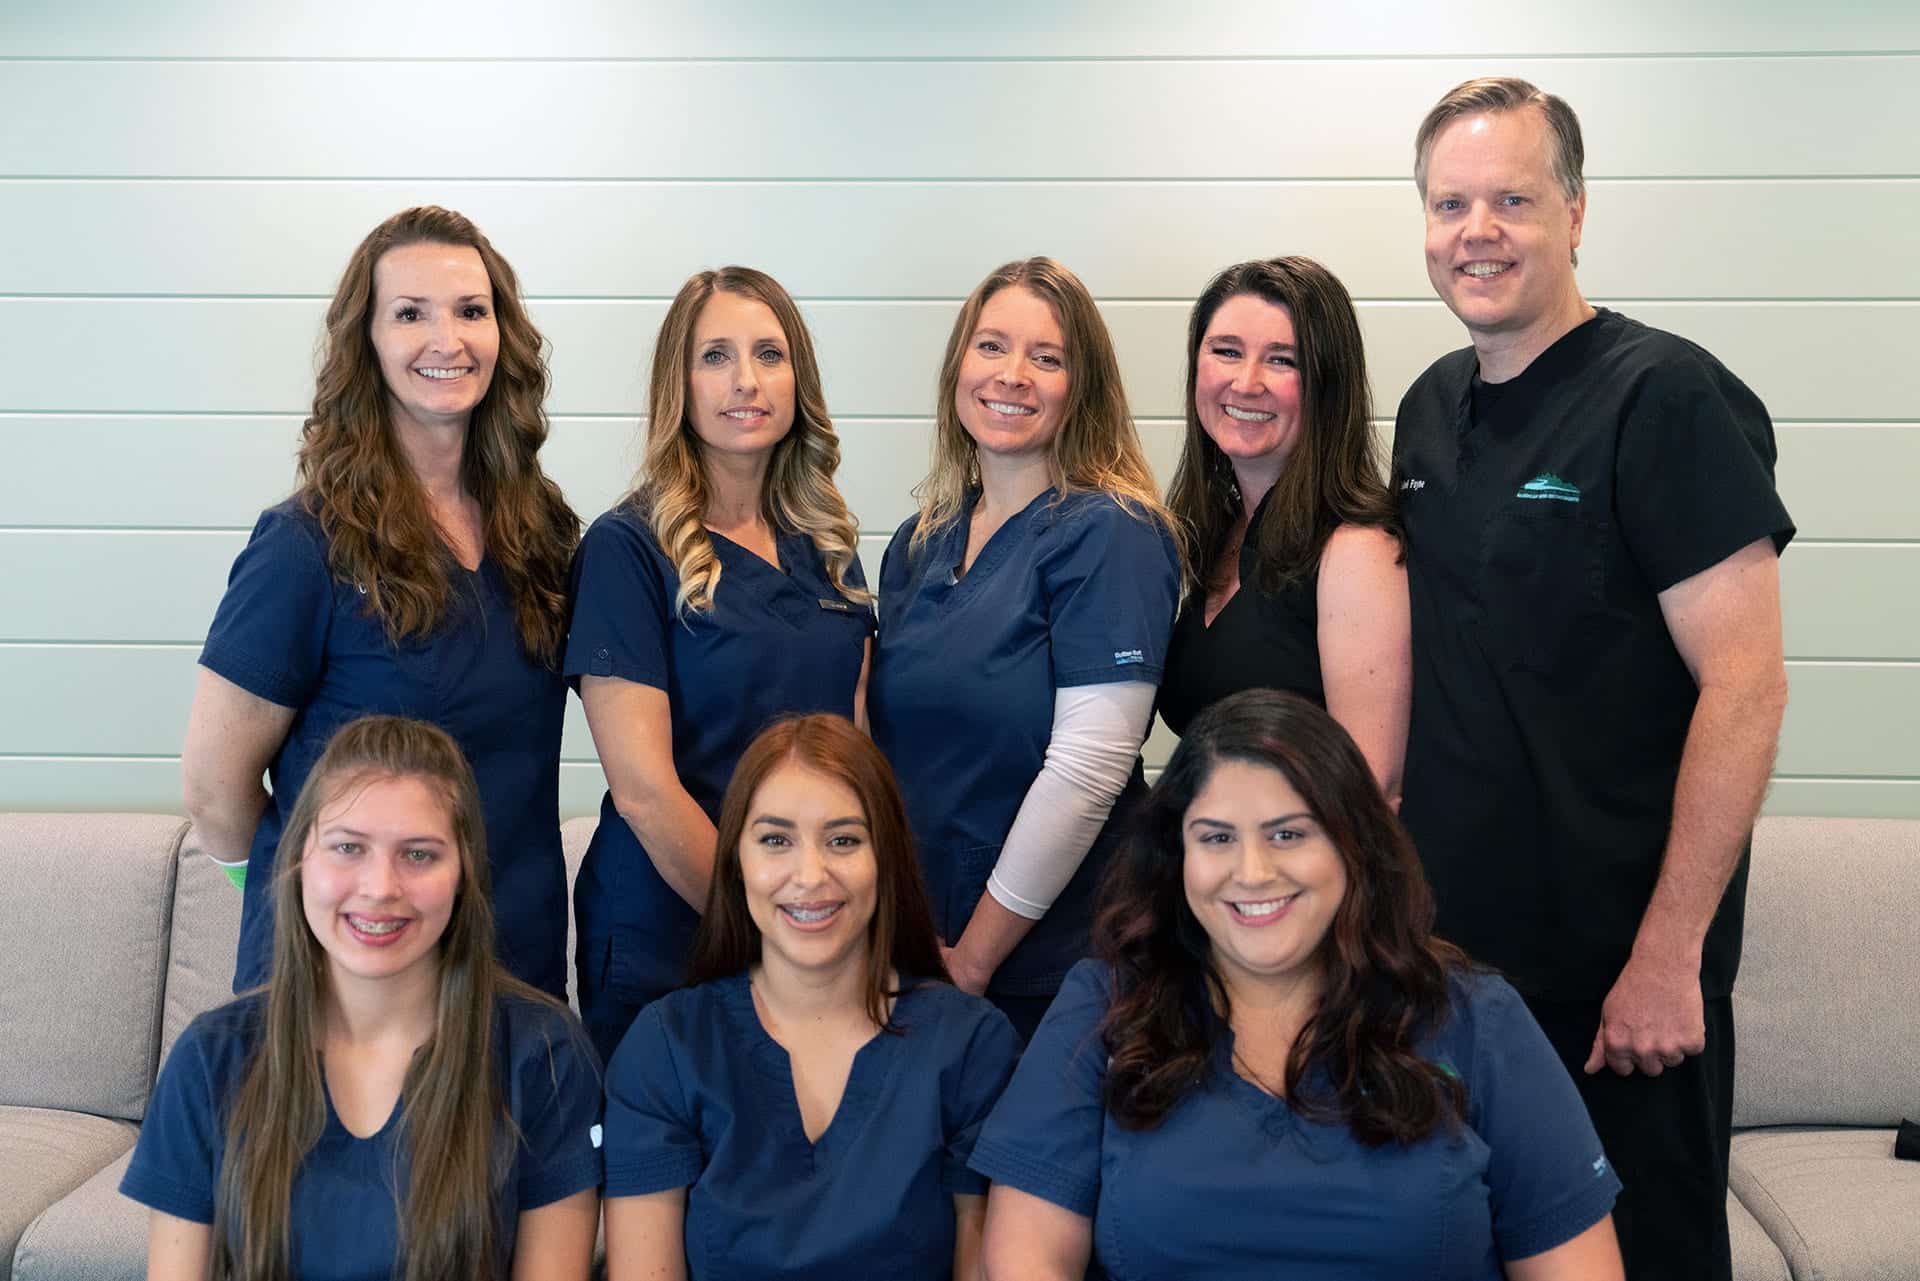 Dr. Michael H. Payne and the American River Orthodontics team